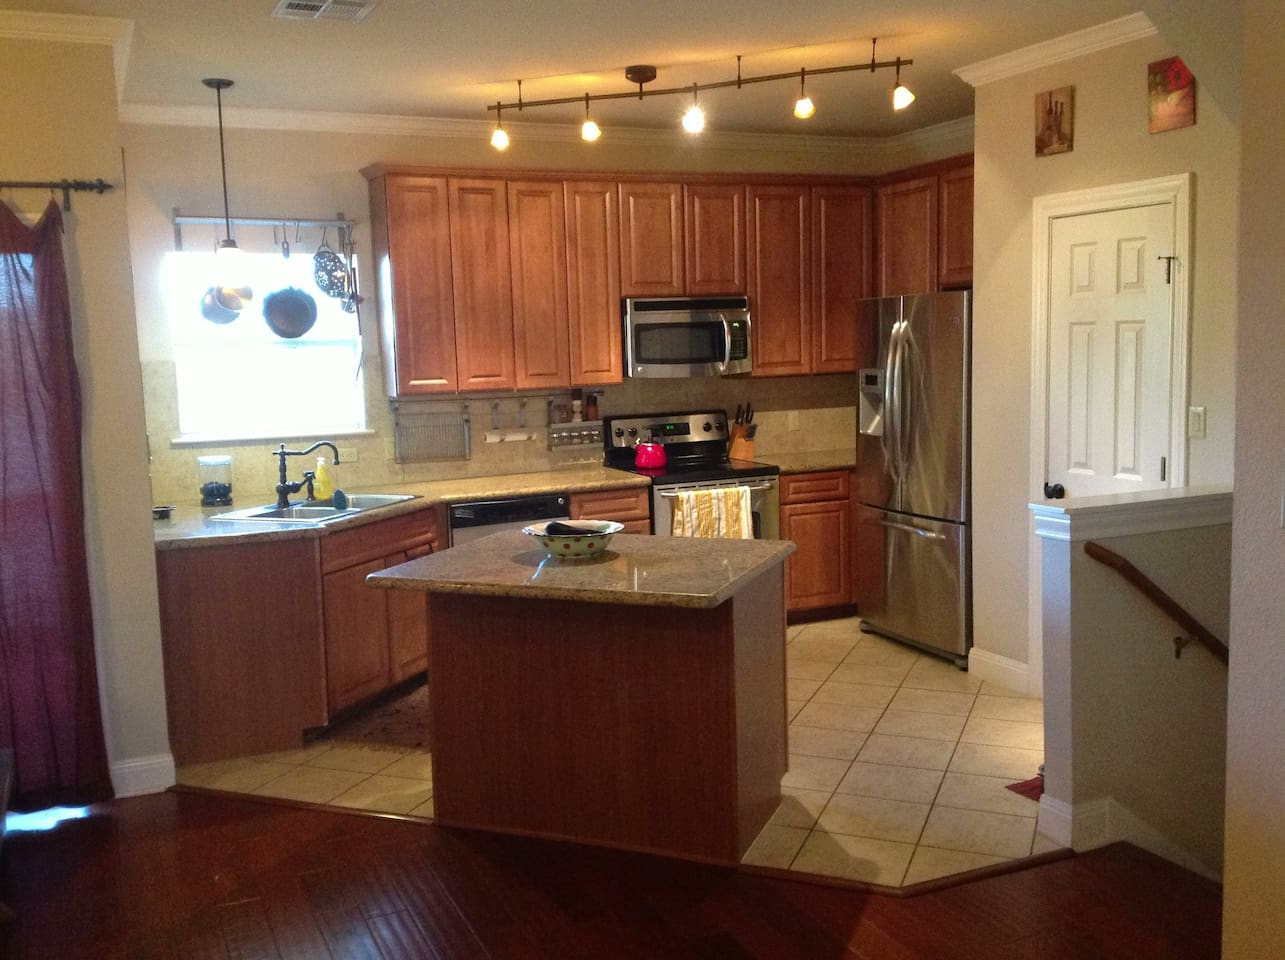 Kitchen with stainless steel appliances, tile flooring, granite counter tops, and track lighting.